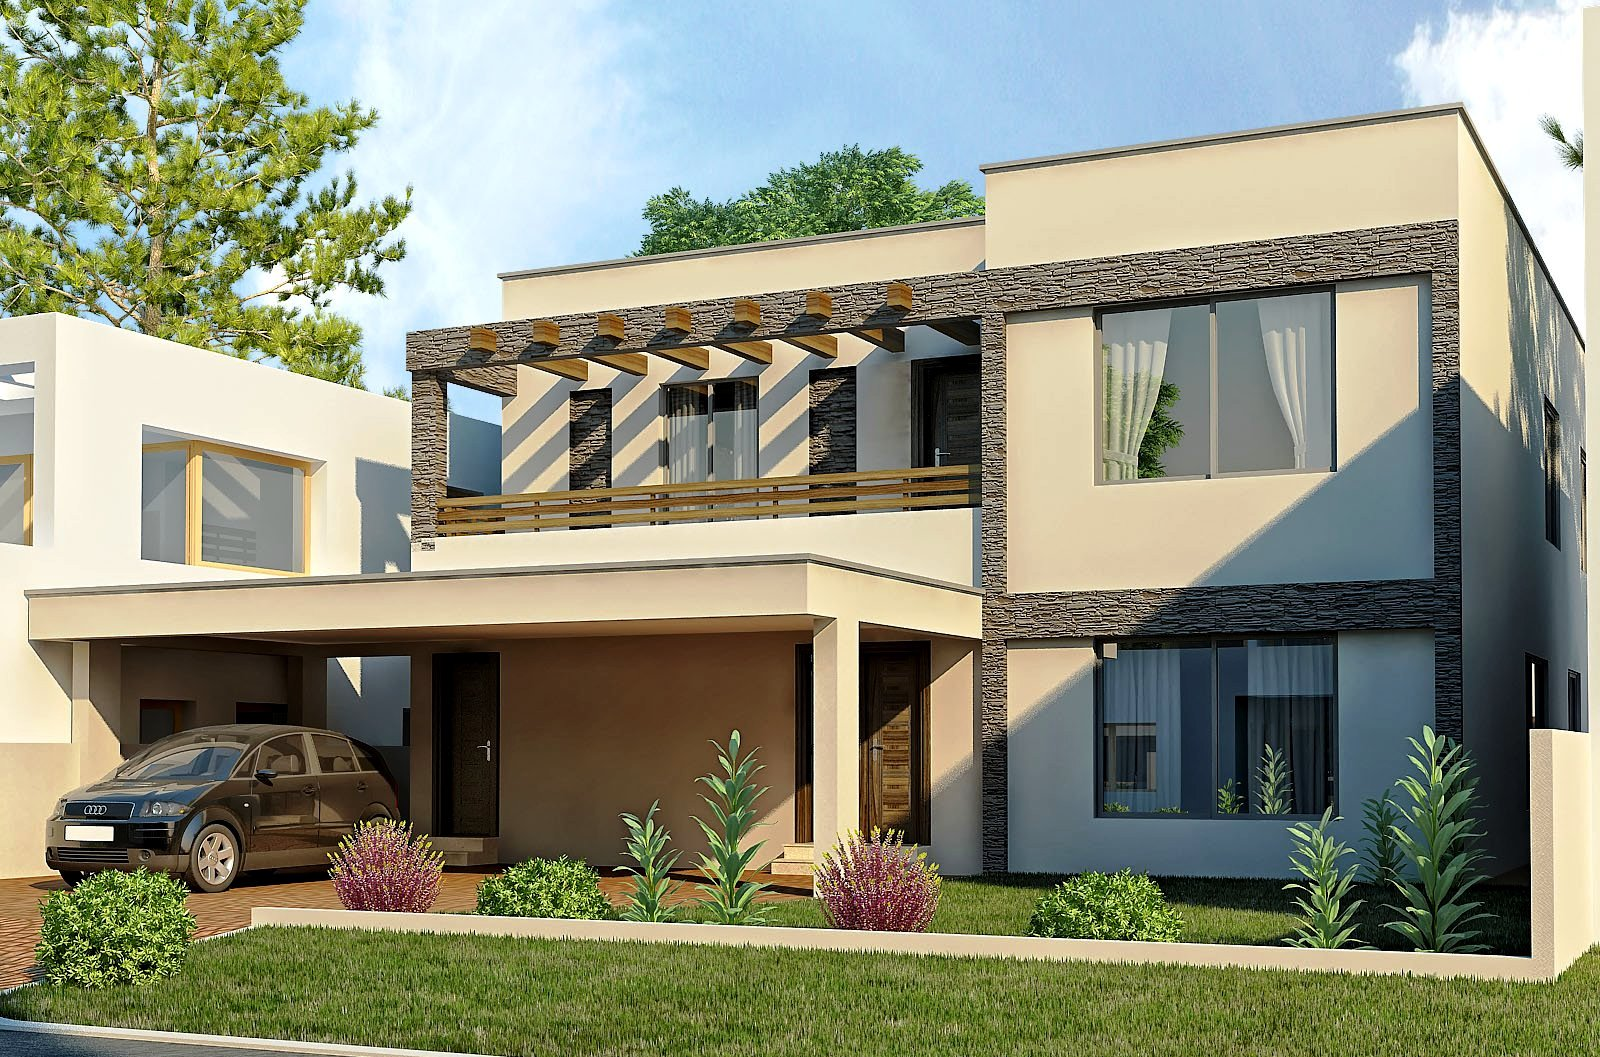 New home designs latest modern homes exterior designs views Modern home design ideas